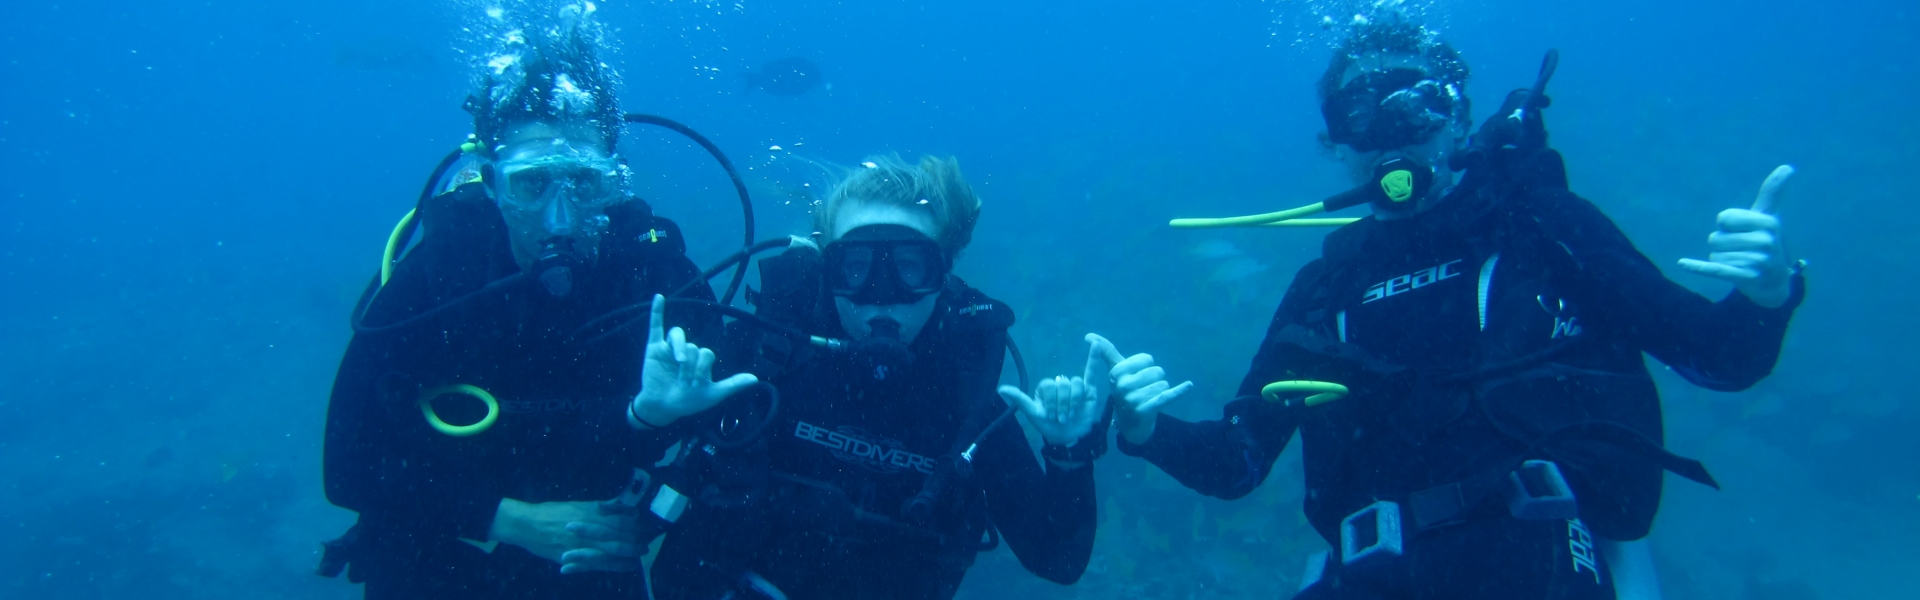 SCUBA divers making hang loose hand signs